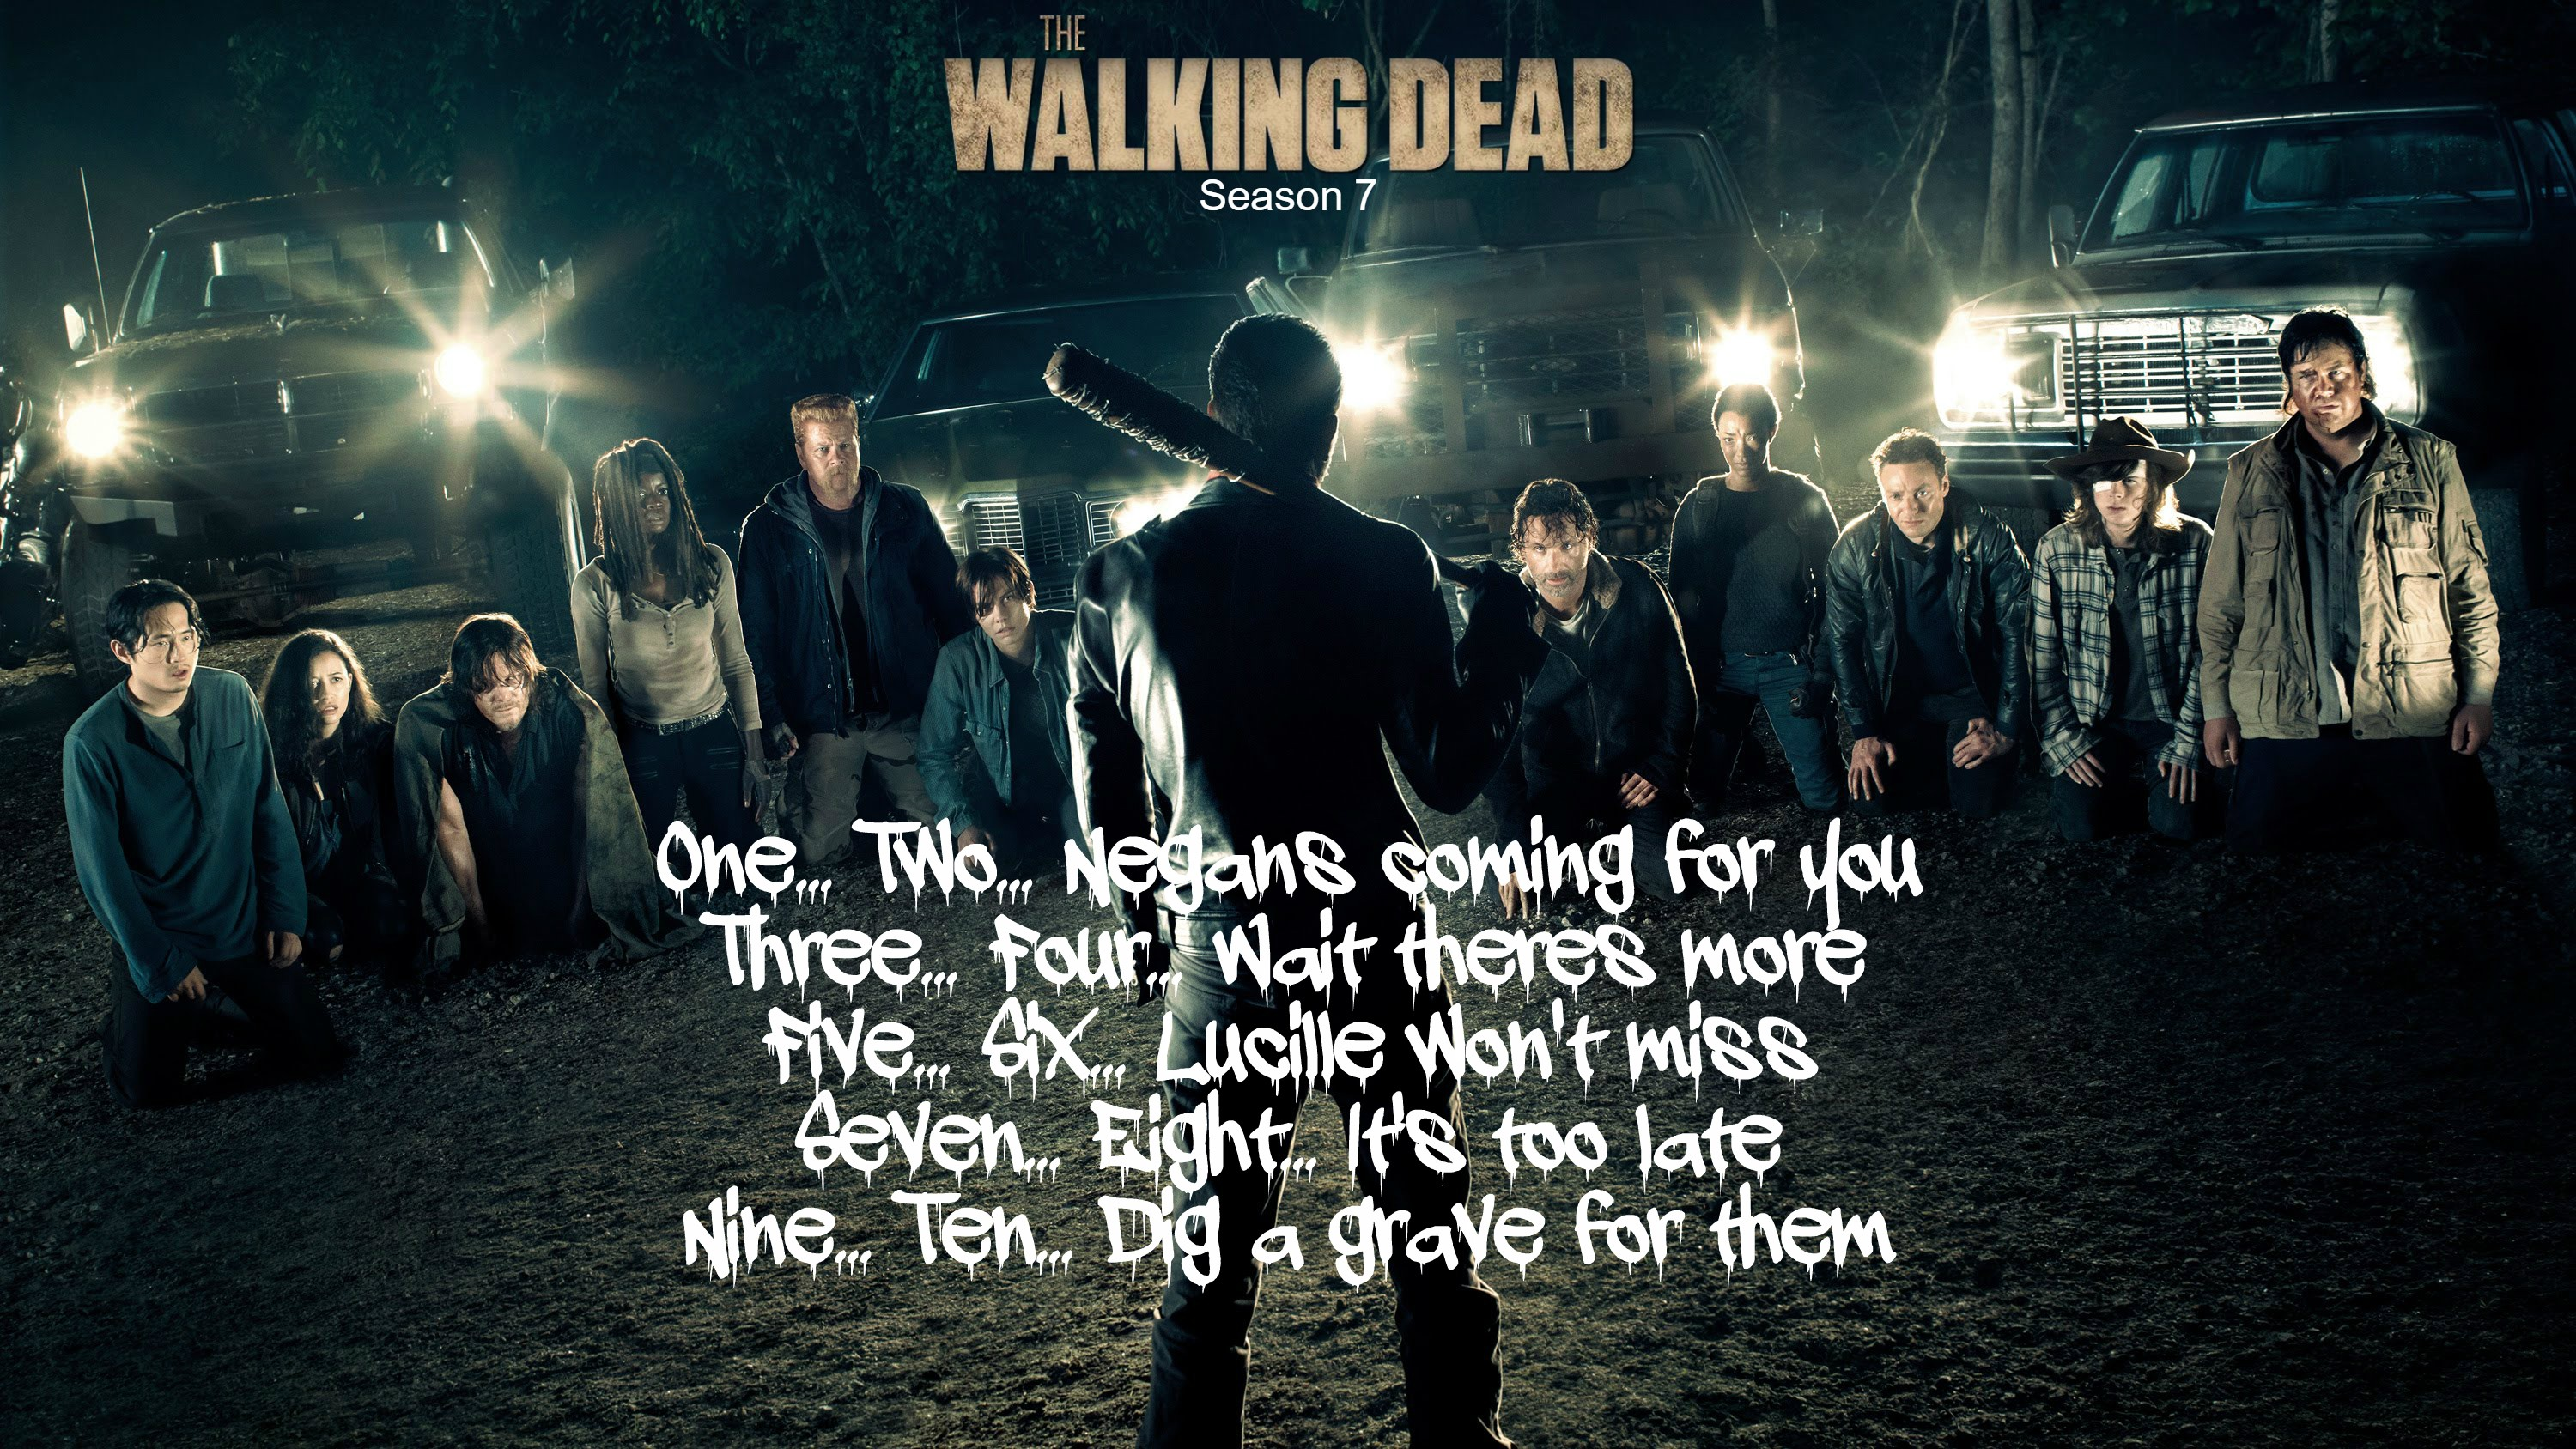 The Walking Dead Wallpaper Download Free Stunning Backgrounds